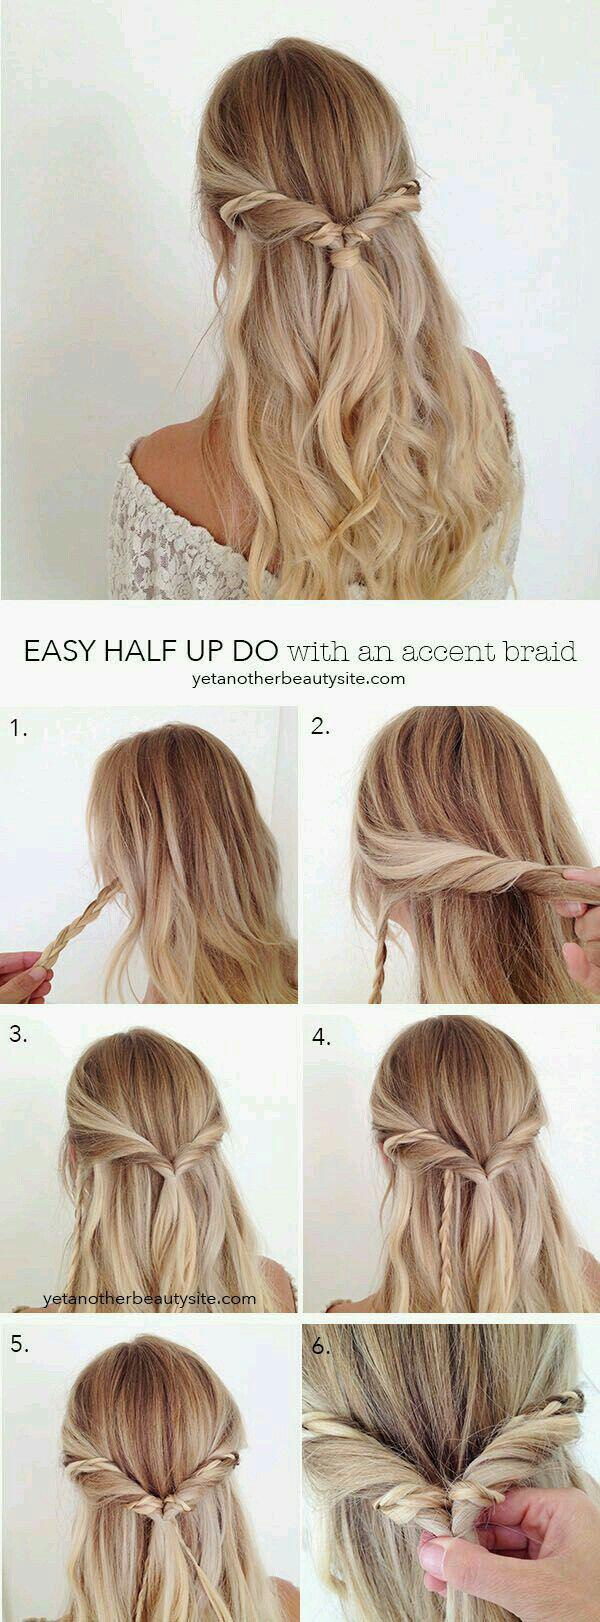 15 gorgeous and easy beach hairstyles to rock this summer 7 - 15 Gorgeous and Easy Beach Hairstyles to rock this summer